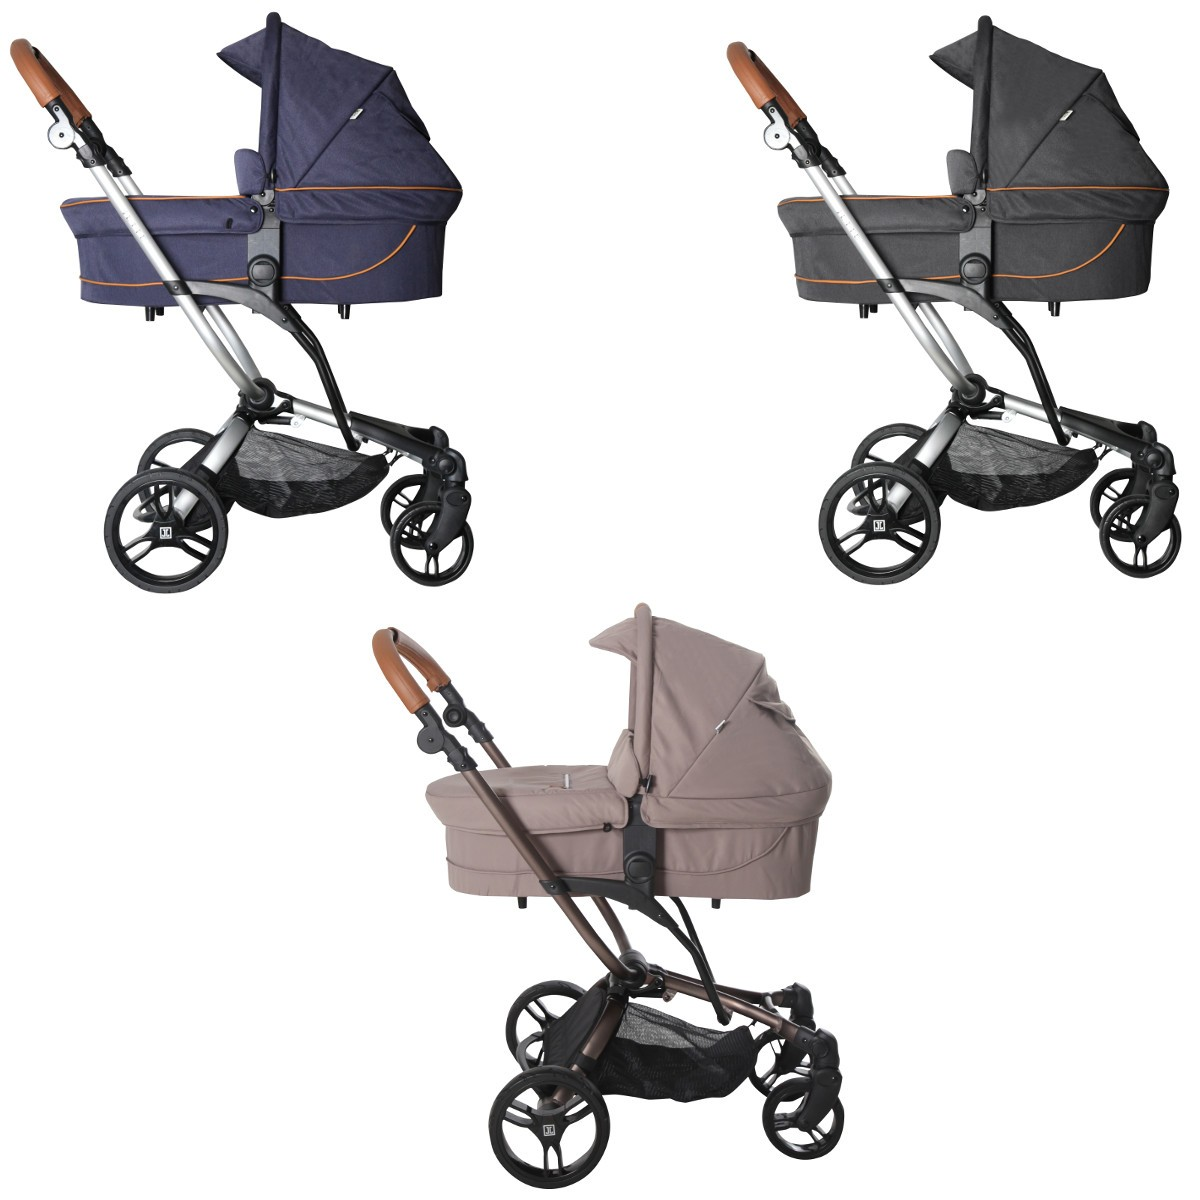 jette jeremy kombi kinderwagen 2in1 mit babywanne sportwagenaufsatz buggy. Black Bedroom Furniture Sets. Home Design Ideas